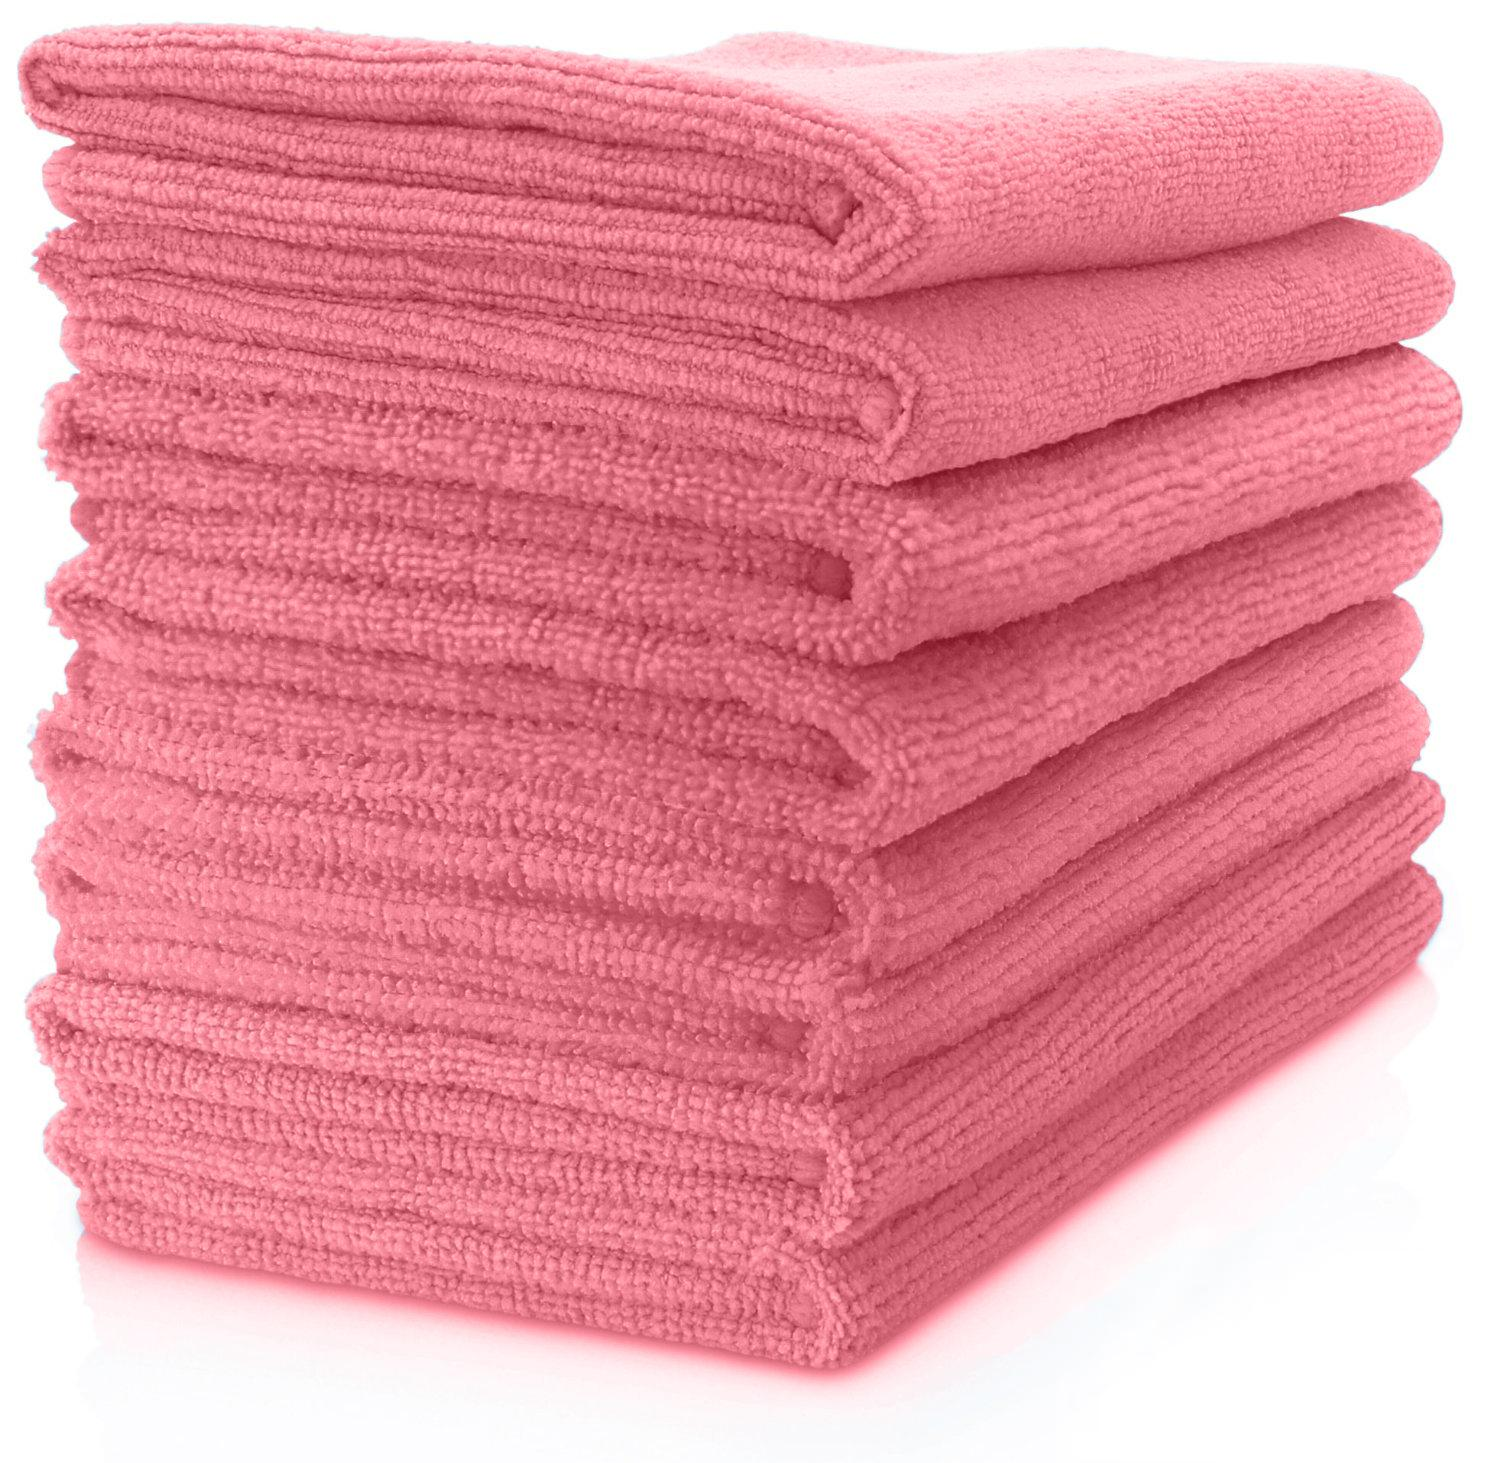 Maxigleam® Red/Pink Microfibre Cloths Pack of 50 Cloths 40x40cms